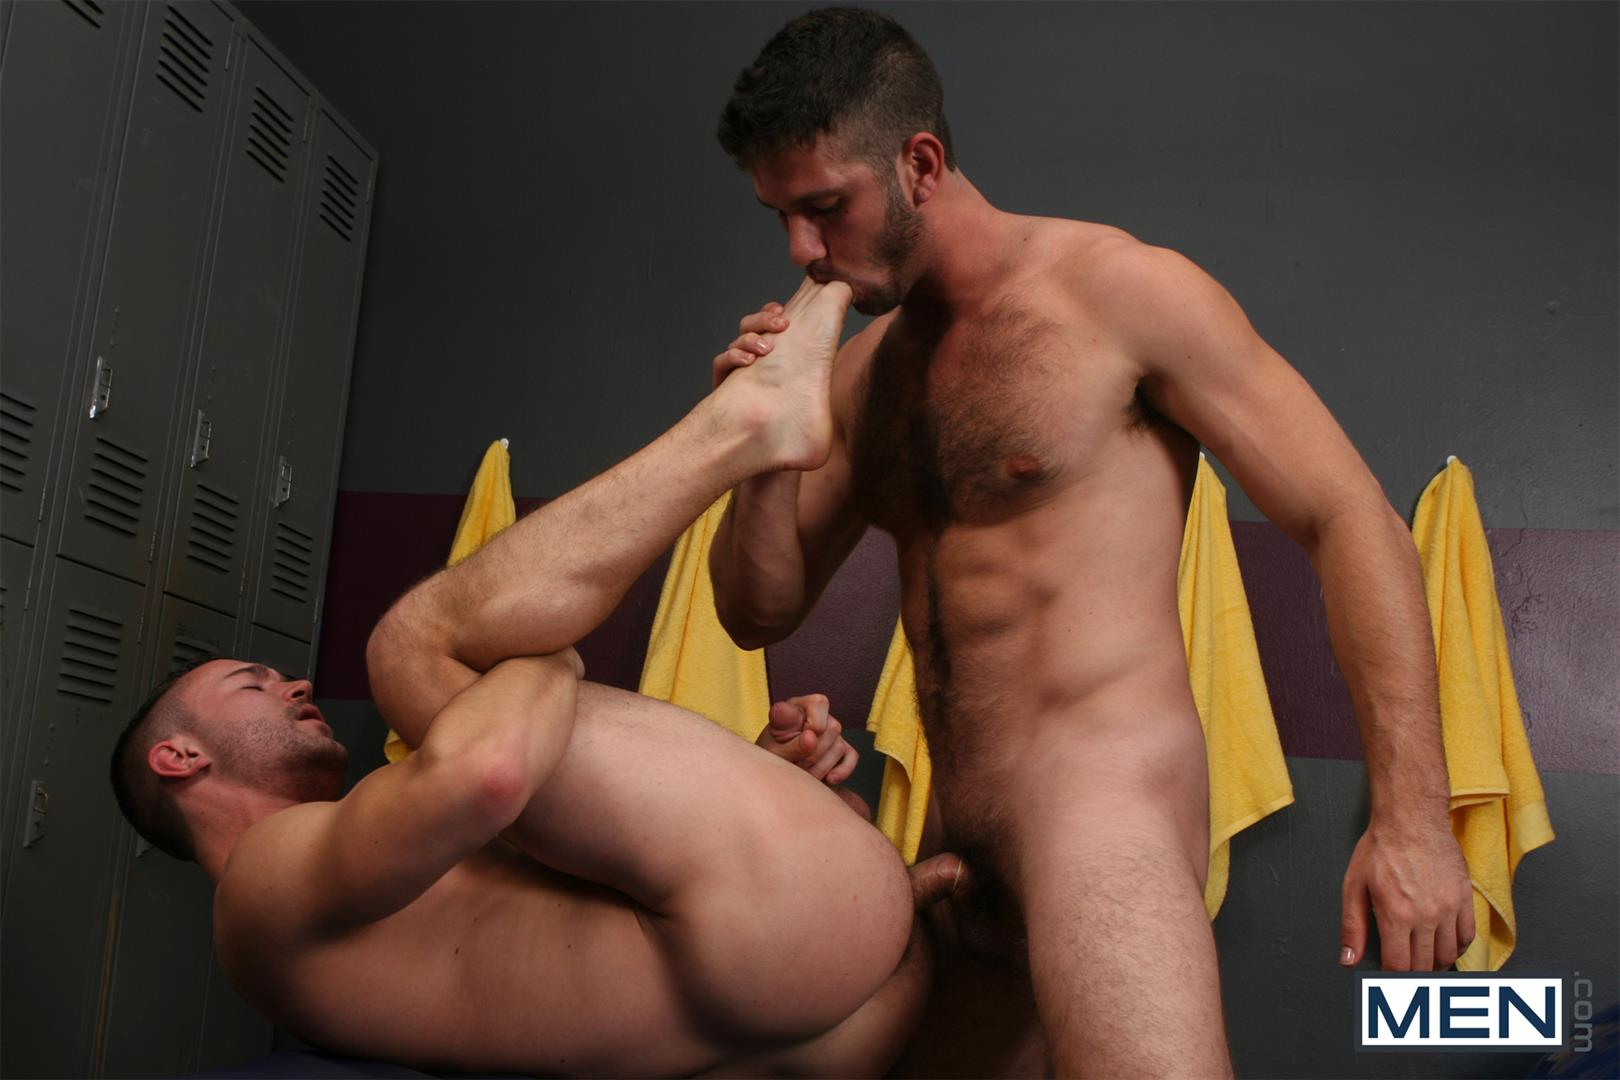 Men Drill My Hole Colt Rivers and Jimmy Fanz Muscle Jocks Fucking In The Locker Room Amateur Gay Porn 14 Hairy Ass Muscle Jocks Fucking In The Locker Room